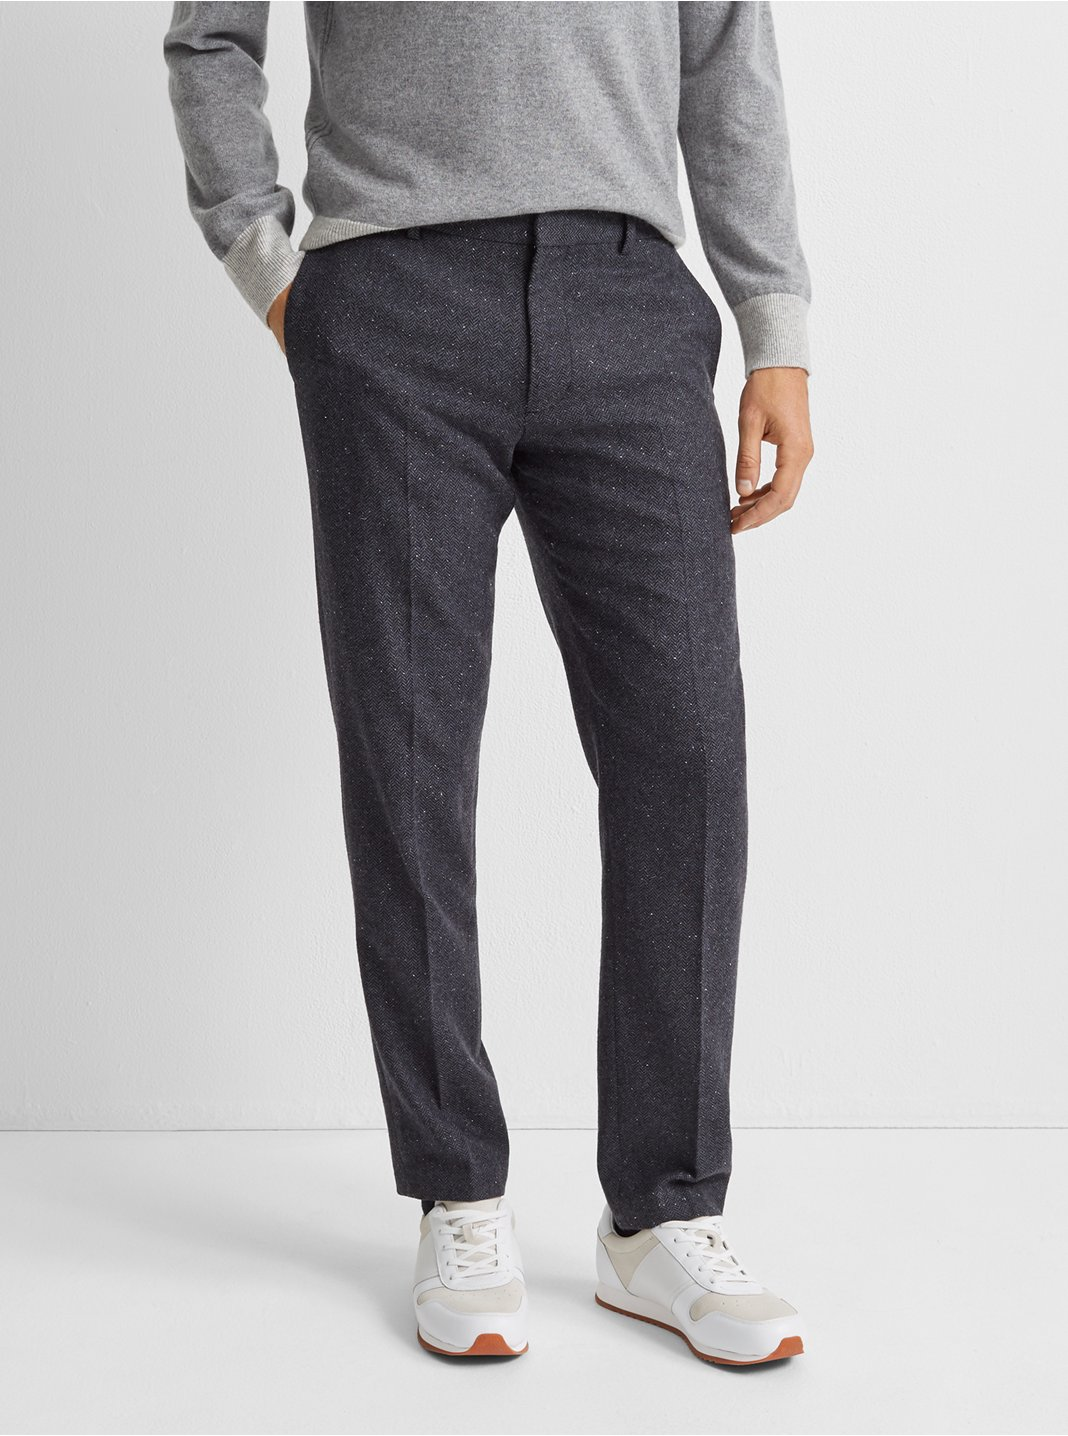 클럽 모나코 서튼 헤링본 드레스 팬츠 Club Monaco Sutton Herringbone Dress Pant,Navy Multi